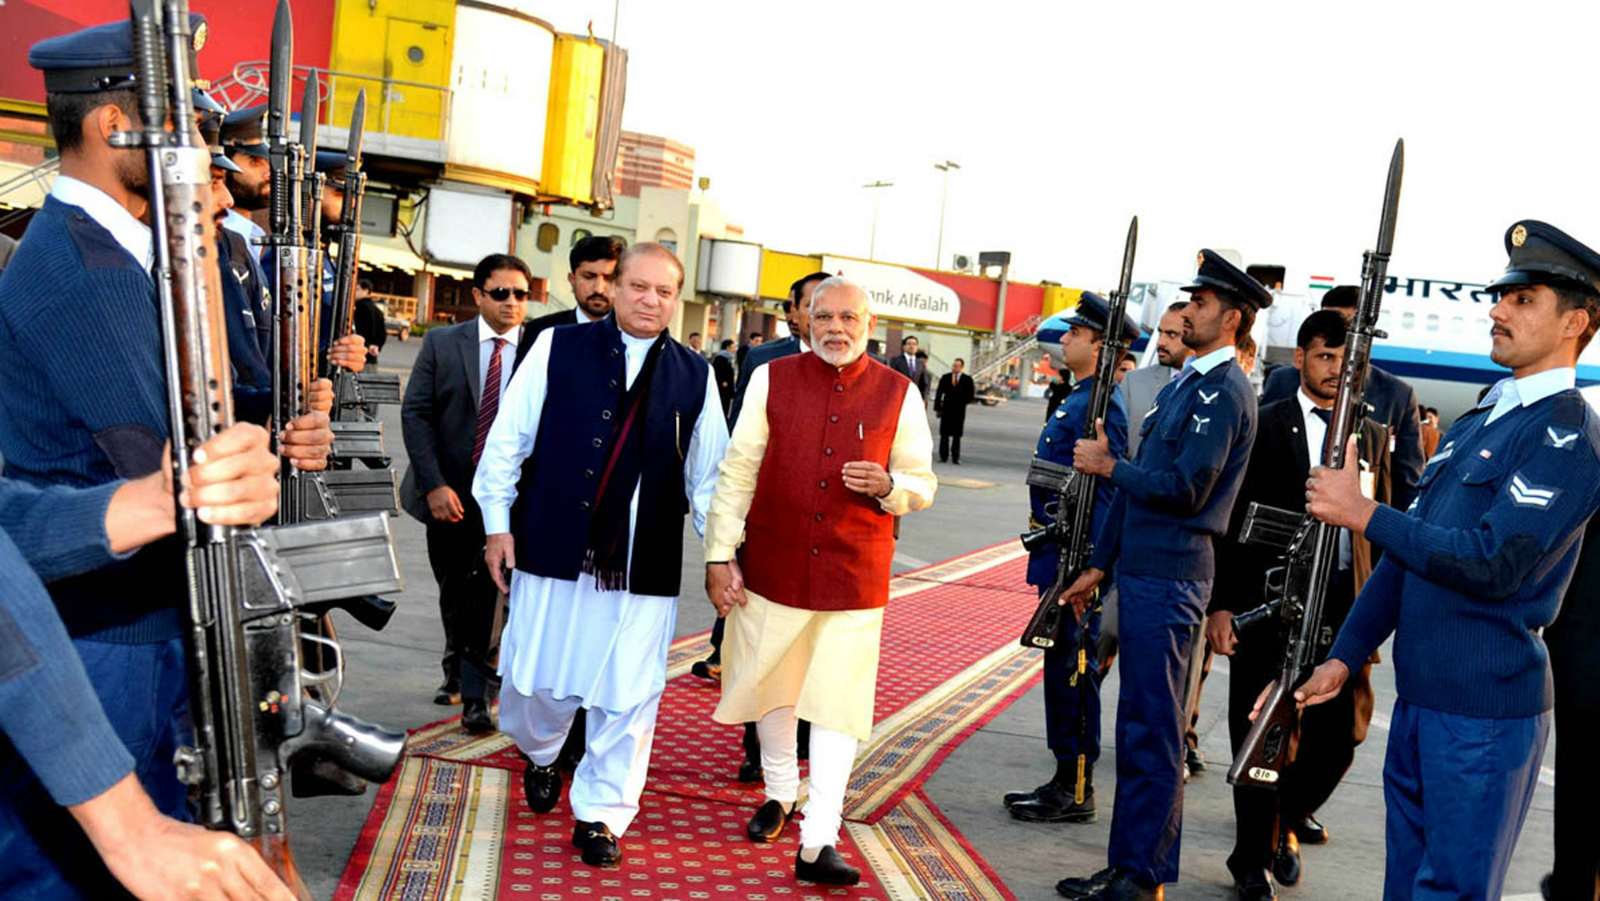 In this photo released by Press Information Department, India's Prime Minister Narendra Modi, right, reviews guard of honor with his Pakistani counterpart Nawaz Sharif in Lahore, Pakistan, Friday, Dec. 25, 2015. Modi arrived in Pakistan on Friday, his first visit as prime minister to this Islamic nation that has been India's long-standing archrival in the region.